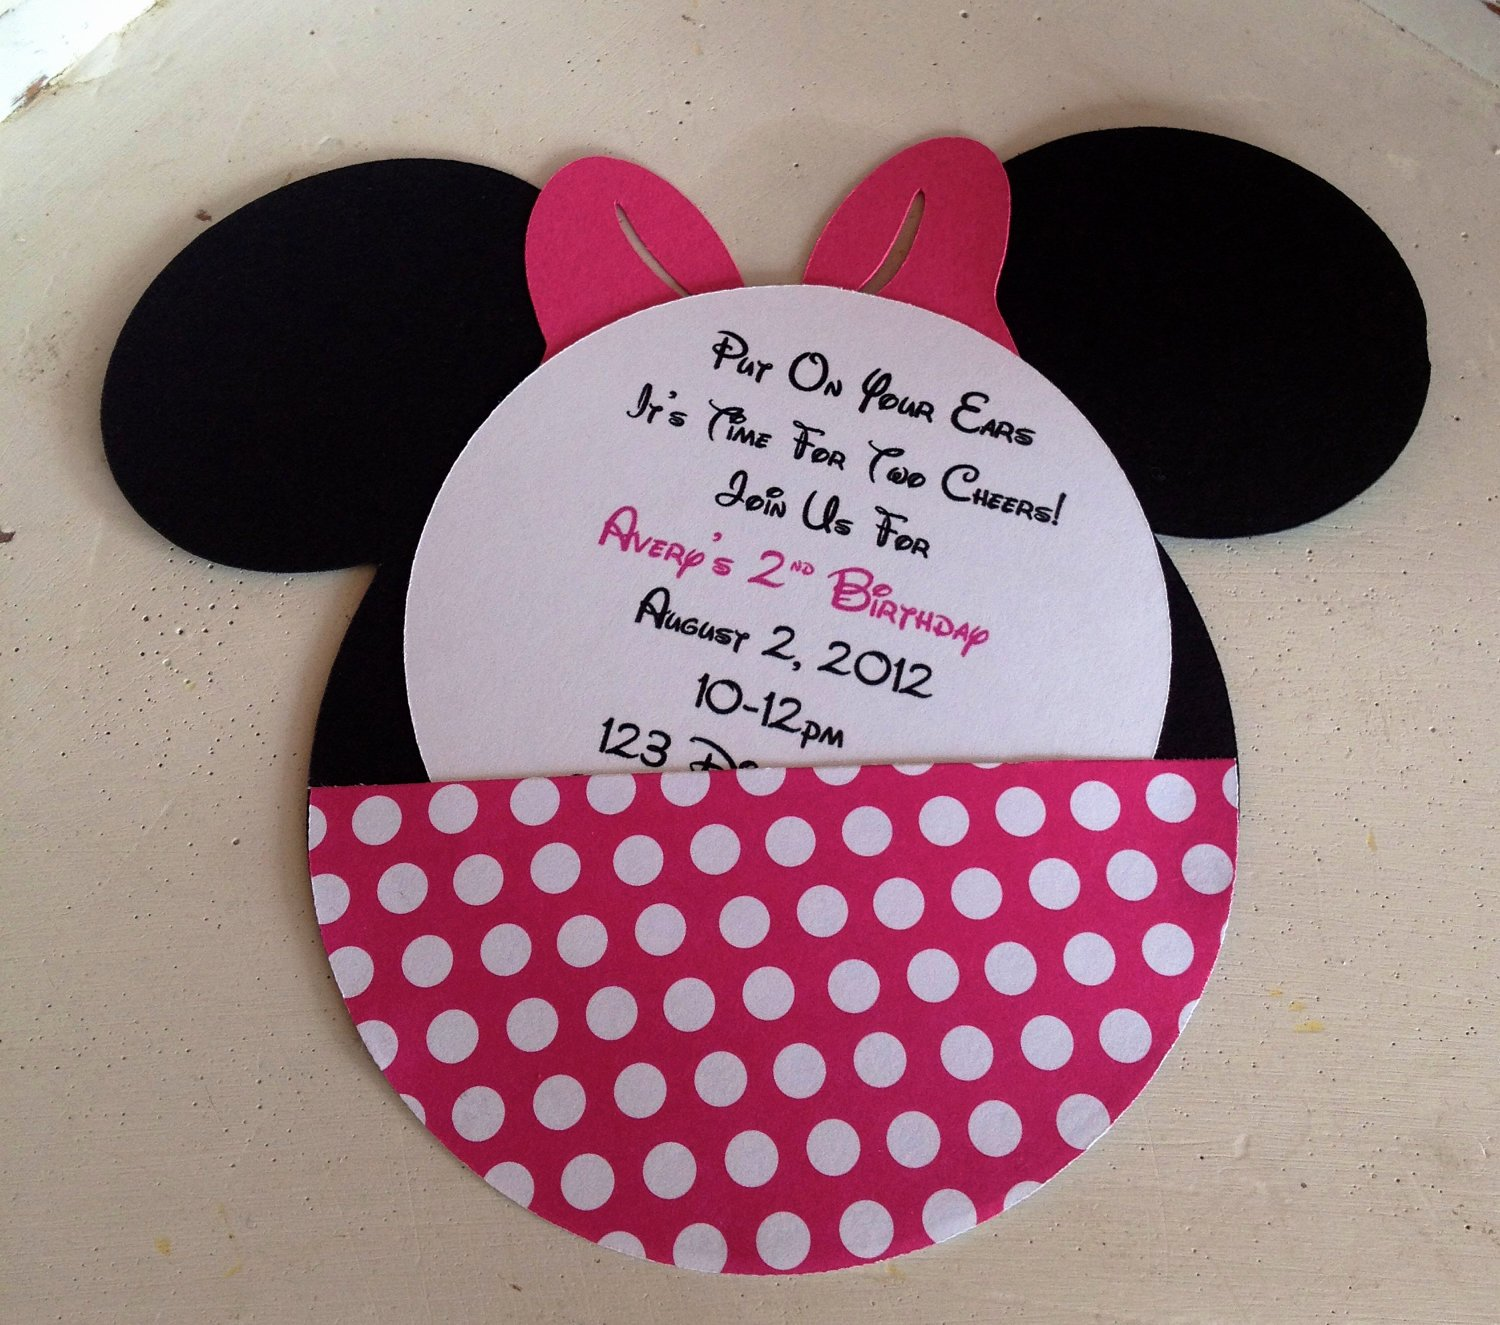 Minnie Mouse Party Invitations Inspirational Handmade Custom Hot Pink Minnie Mouse Birthday Invitations